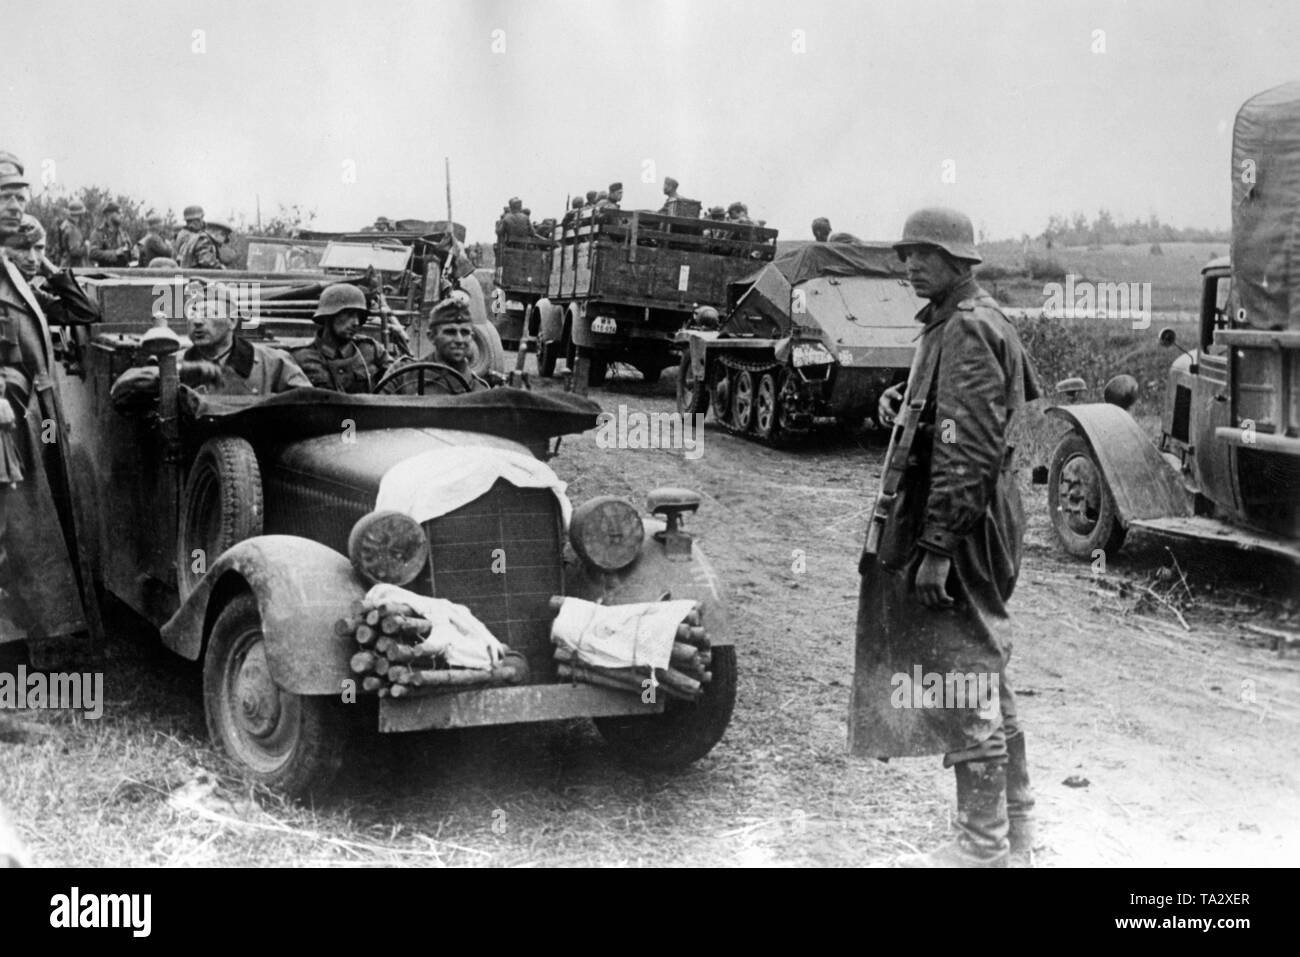 A regimental commander (in the car on the far left) came to the front to discuss with the battalion commander the operation against a village. At Borodino, about 100 kilometers west of Moscow. Photo: war correspondent Herrmann. Stock Photo